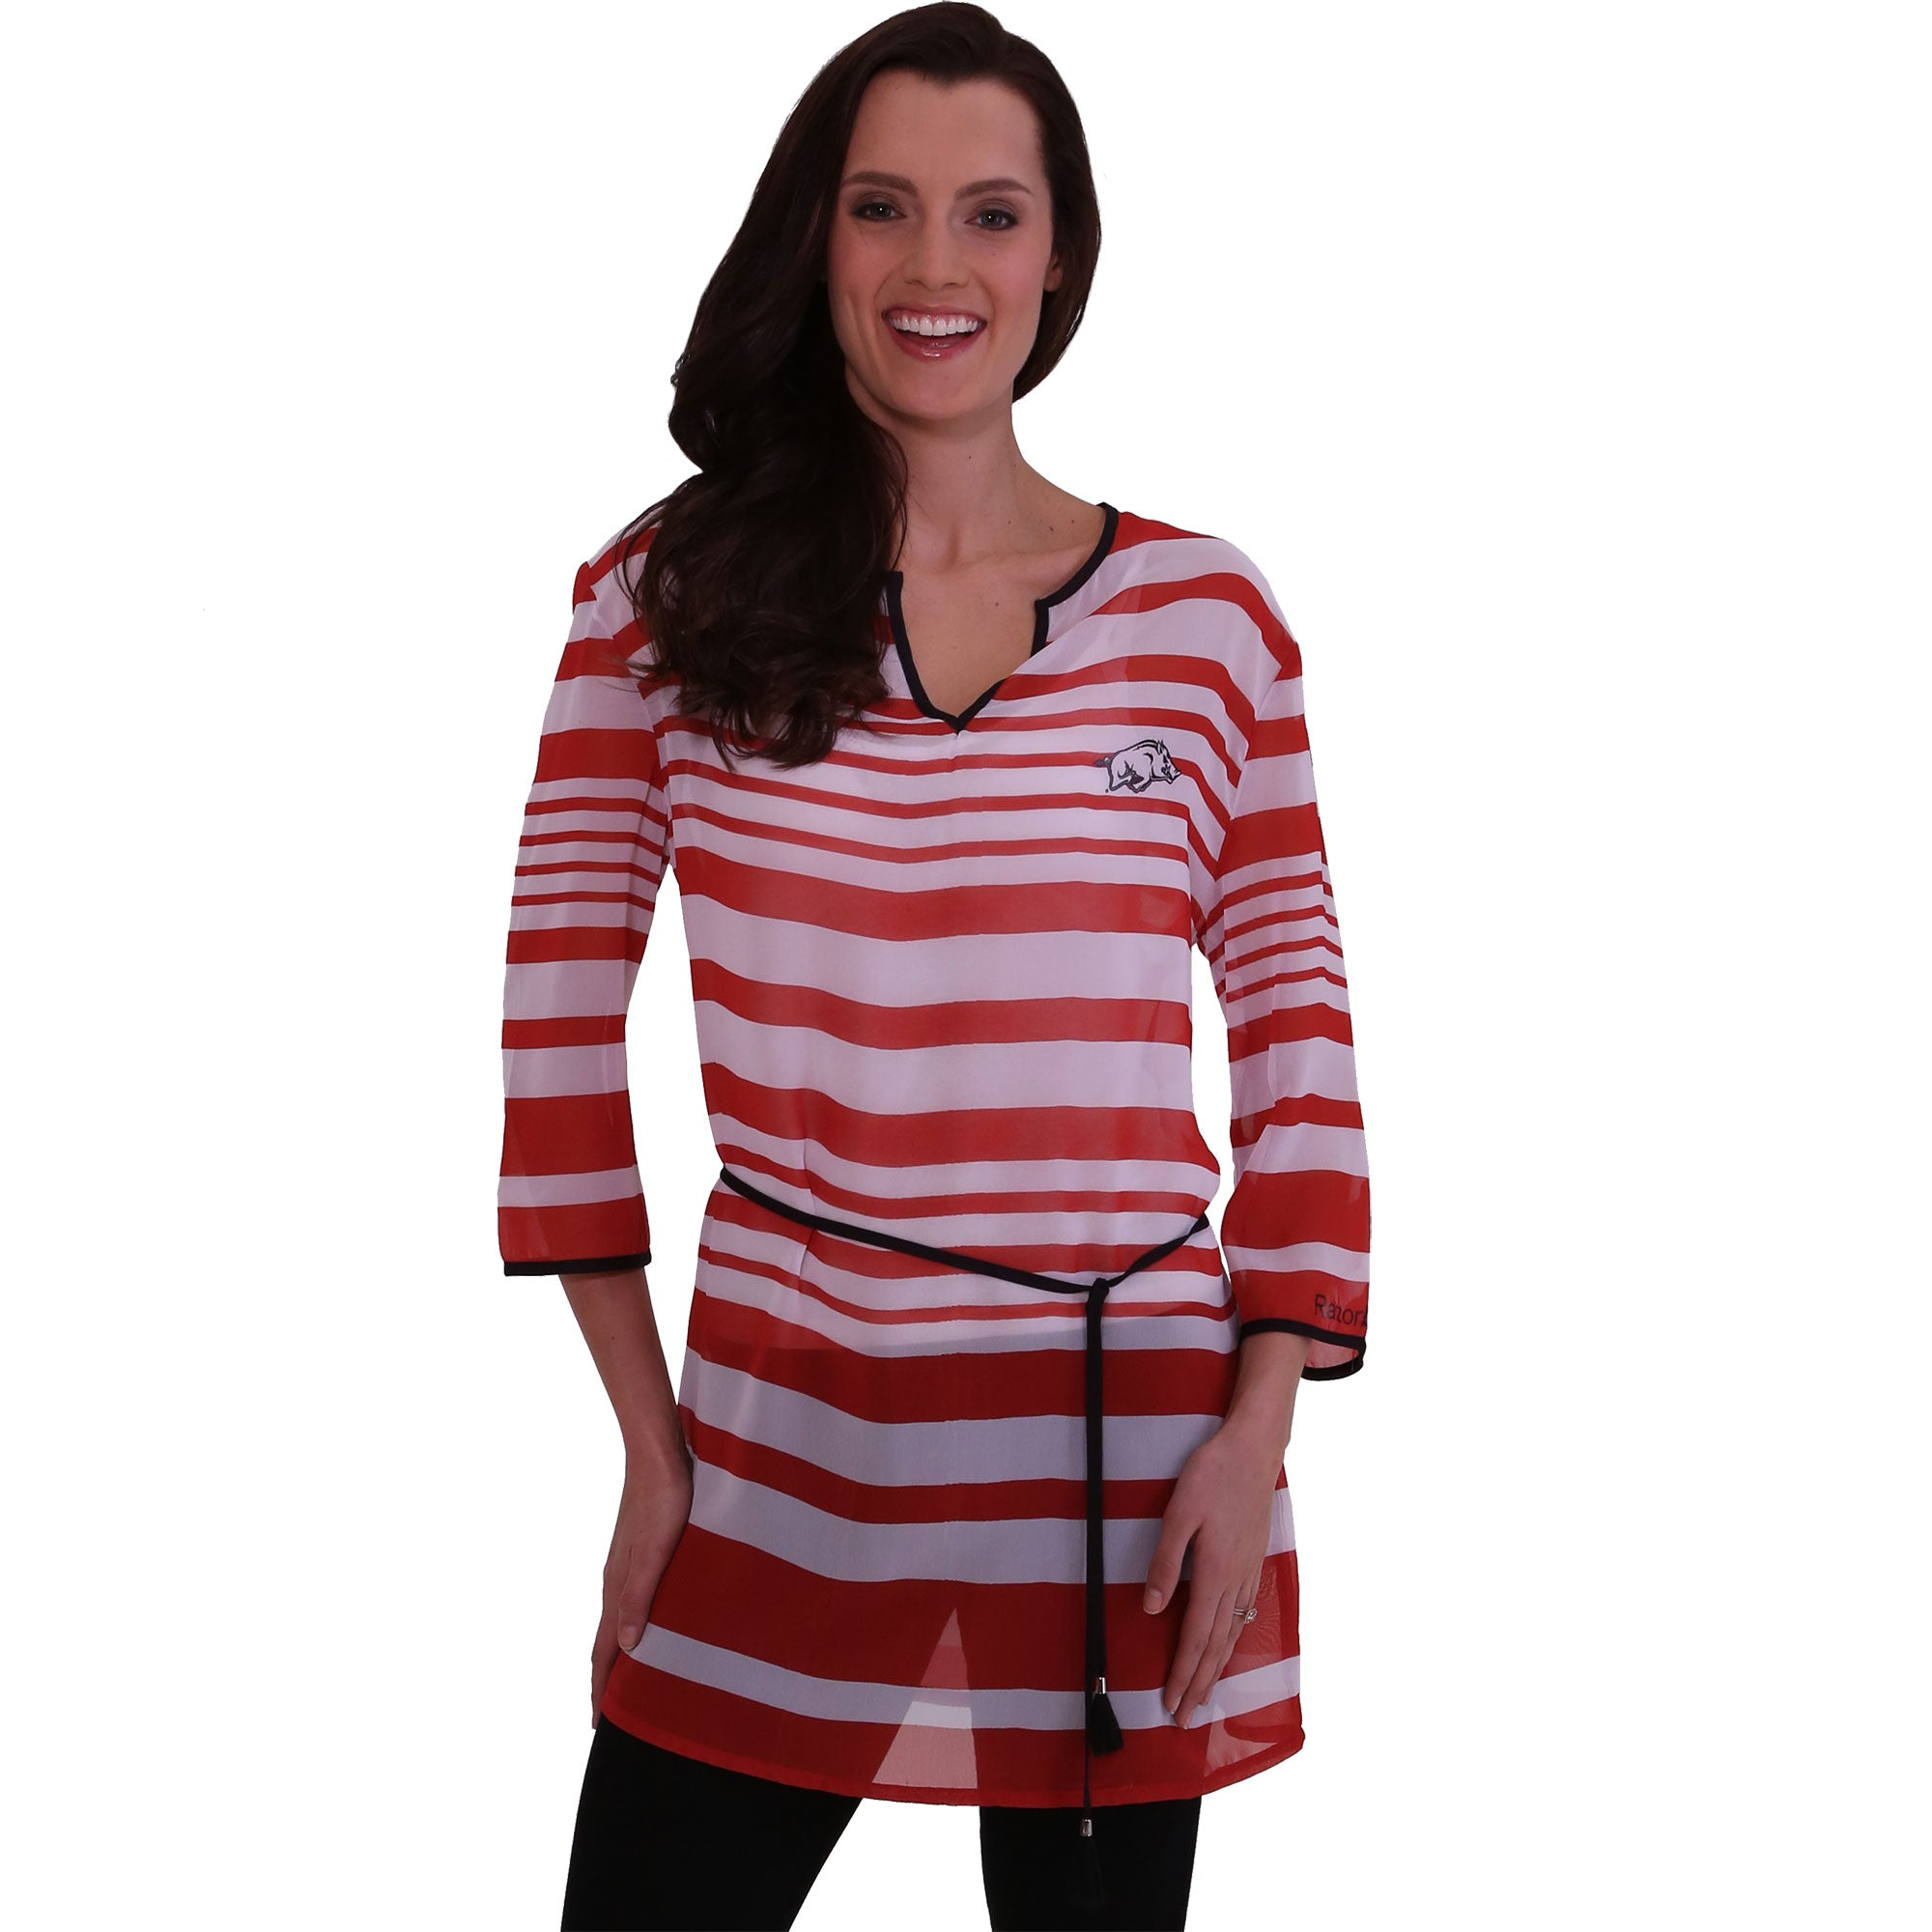 ARKANSAS RAZORBACKS SHEER STRIPE TUNIC